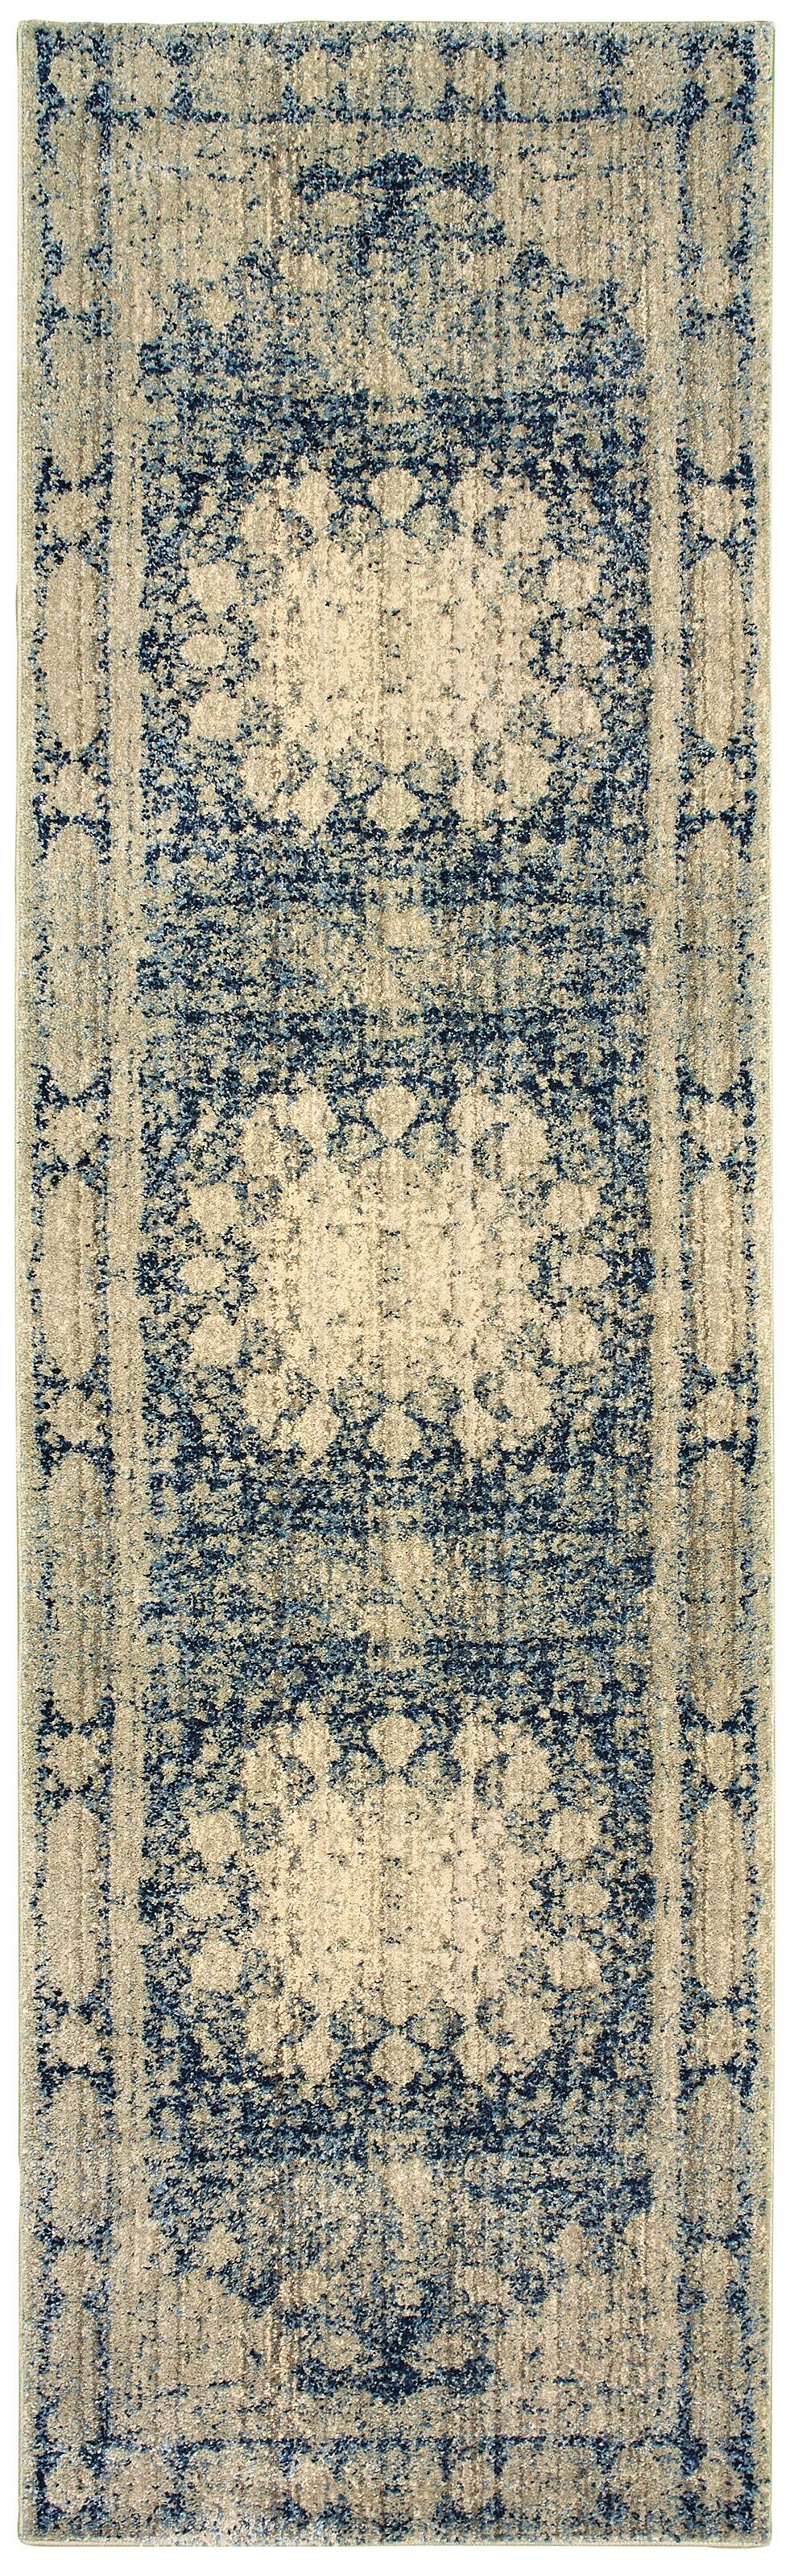 Quenby Floral Ivory/Blue Area Rug Rug Size: Runner 2'3